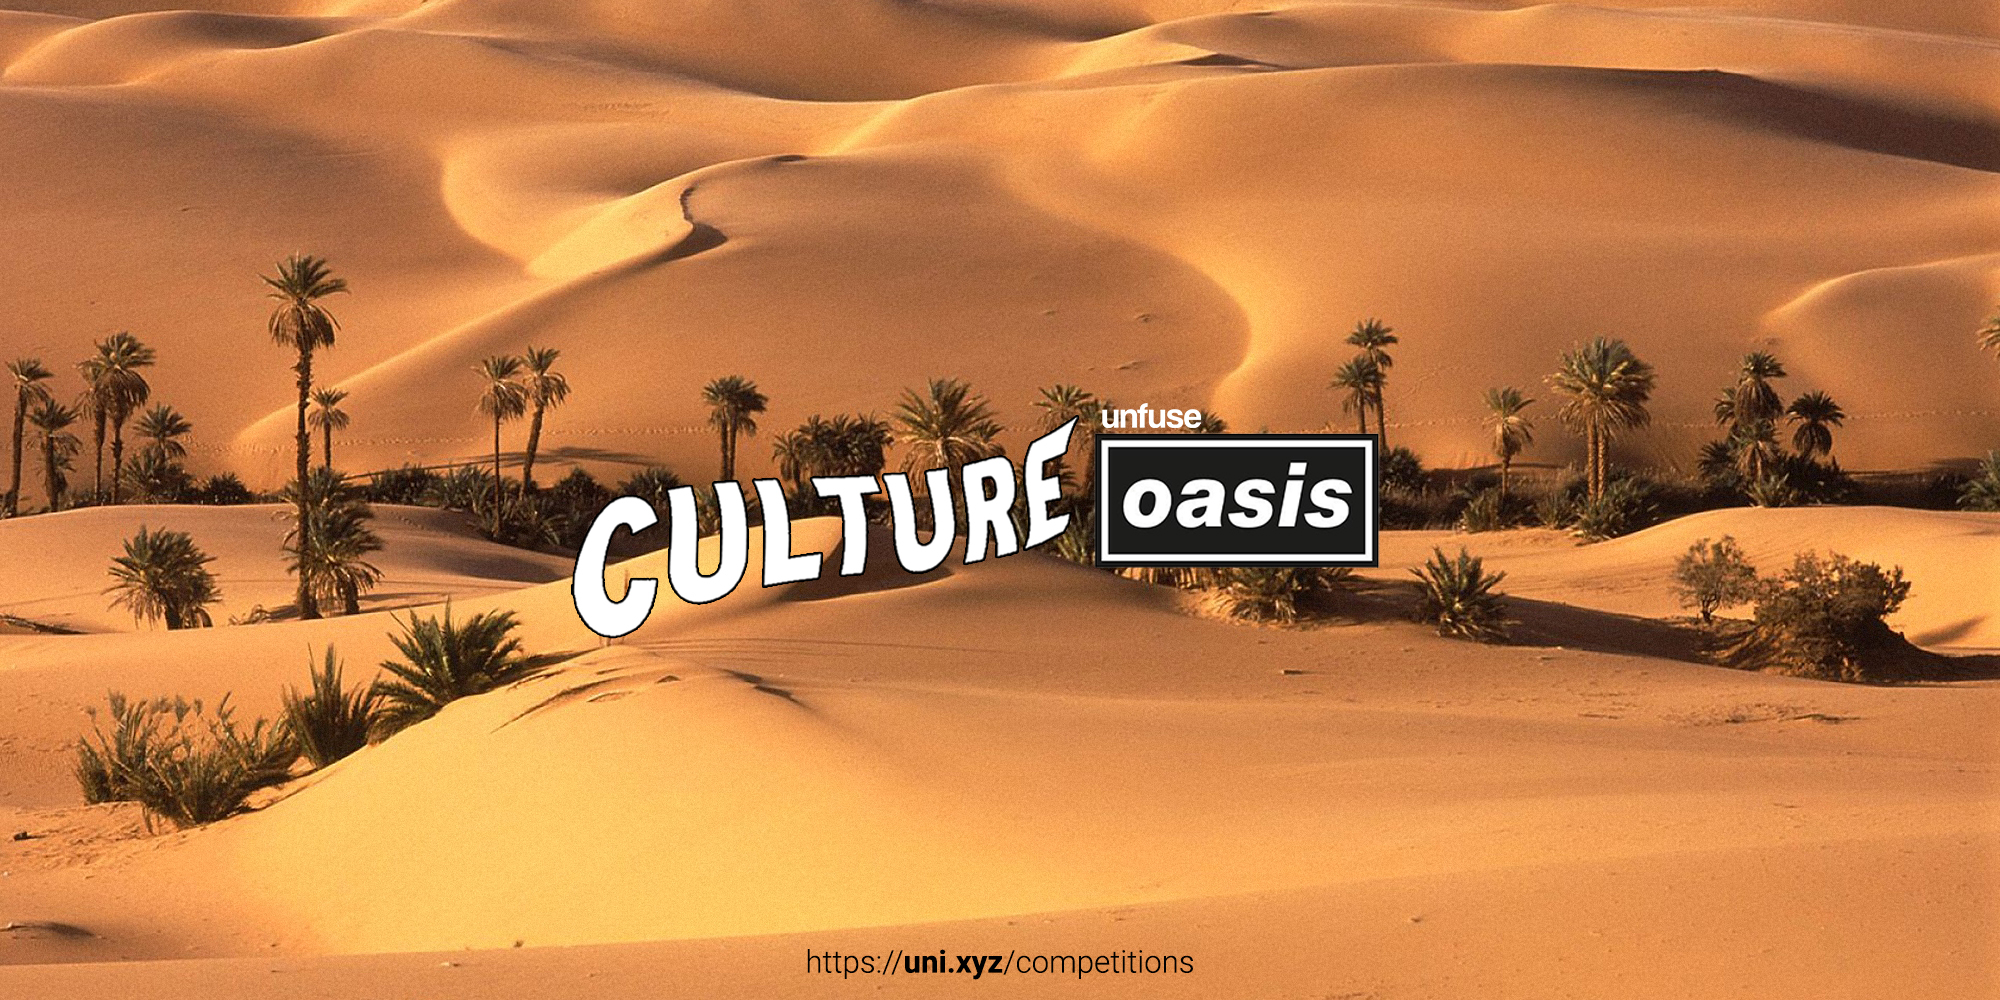 The Oasis Cultural Center